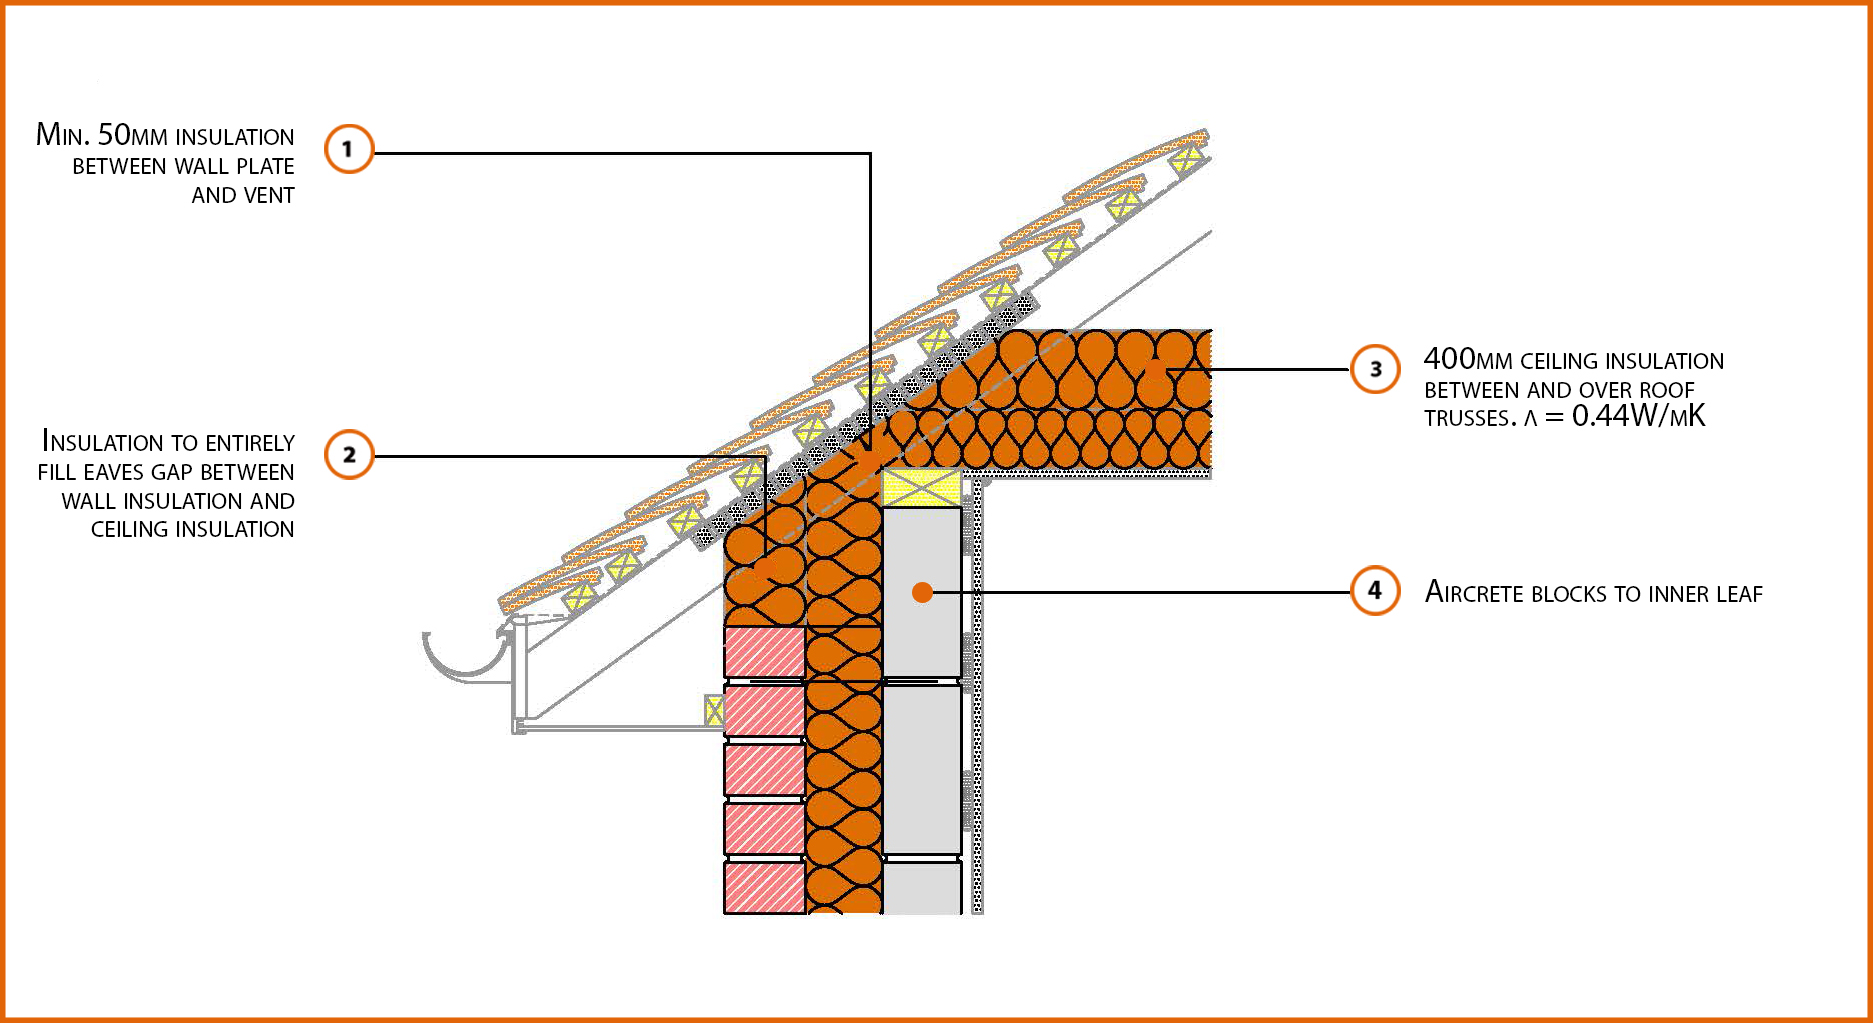 E10mcff4 Pitched Roof Eaves Insulation At Ceiling Level